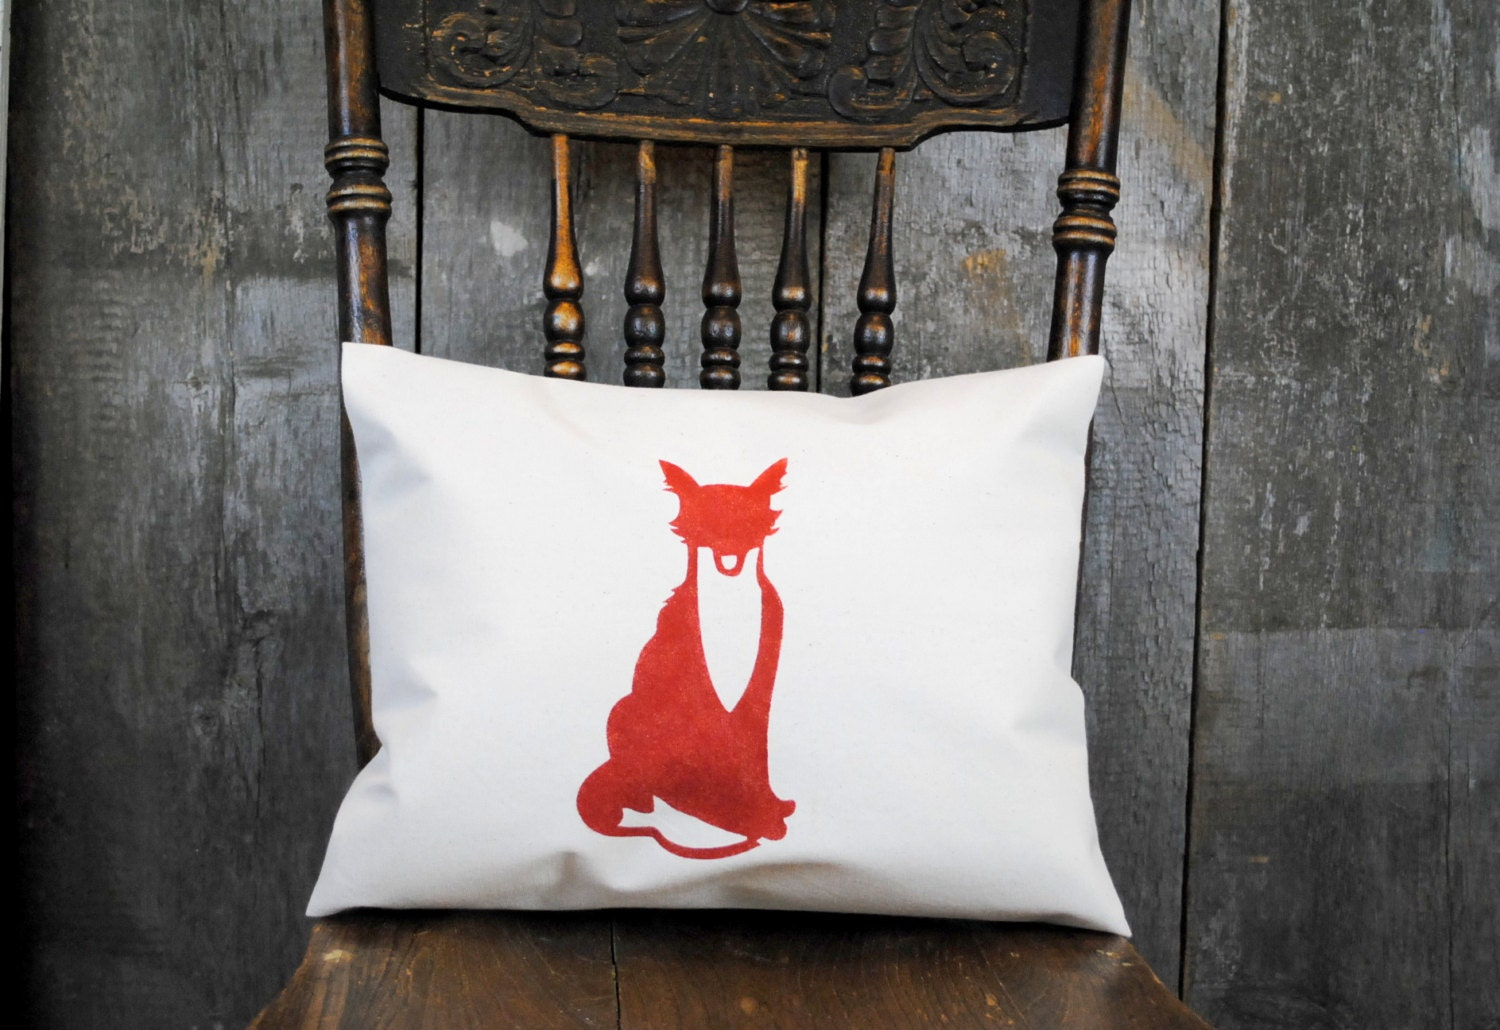 A Classic Vintage Fox Pillow Cover For Your Home Decor